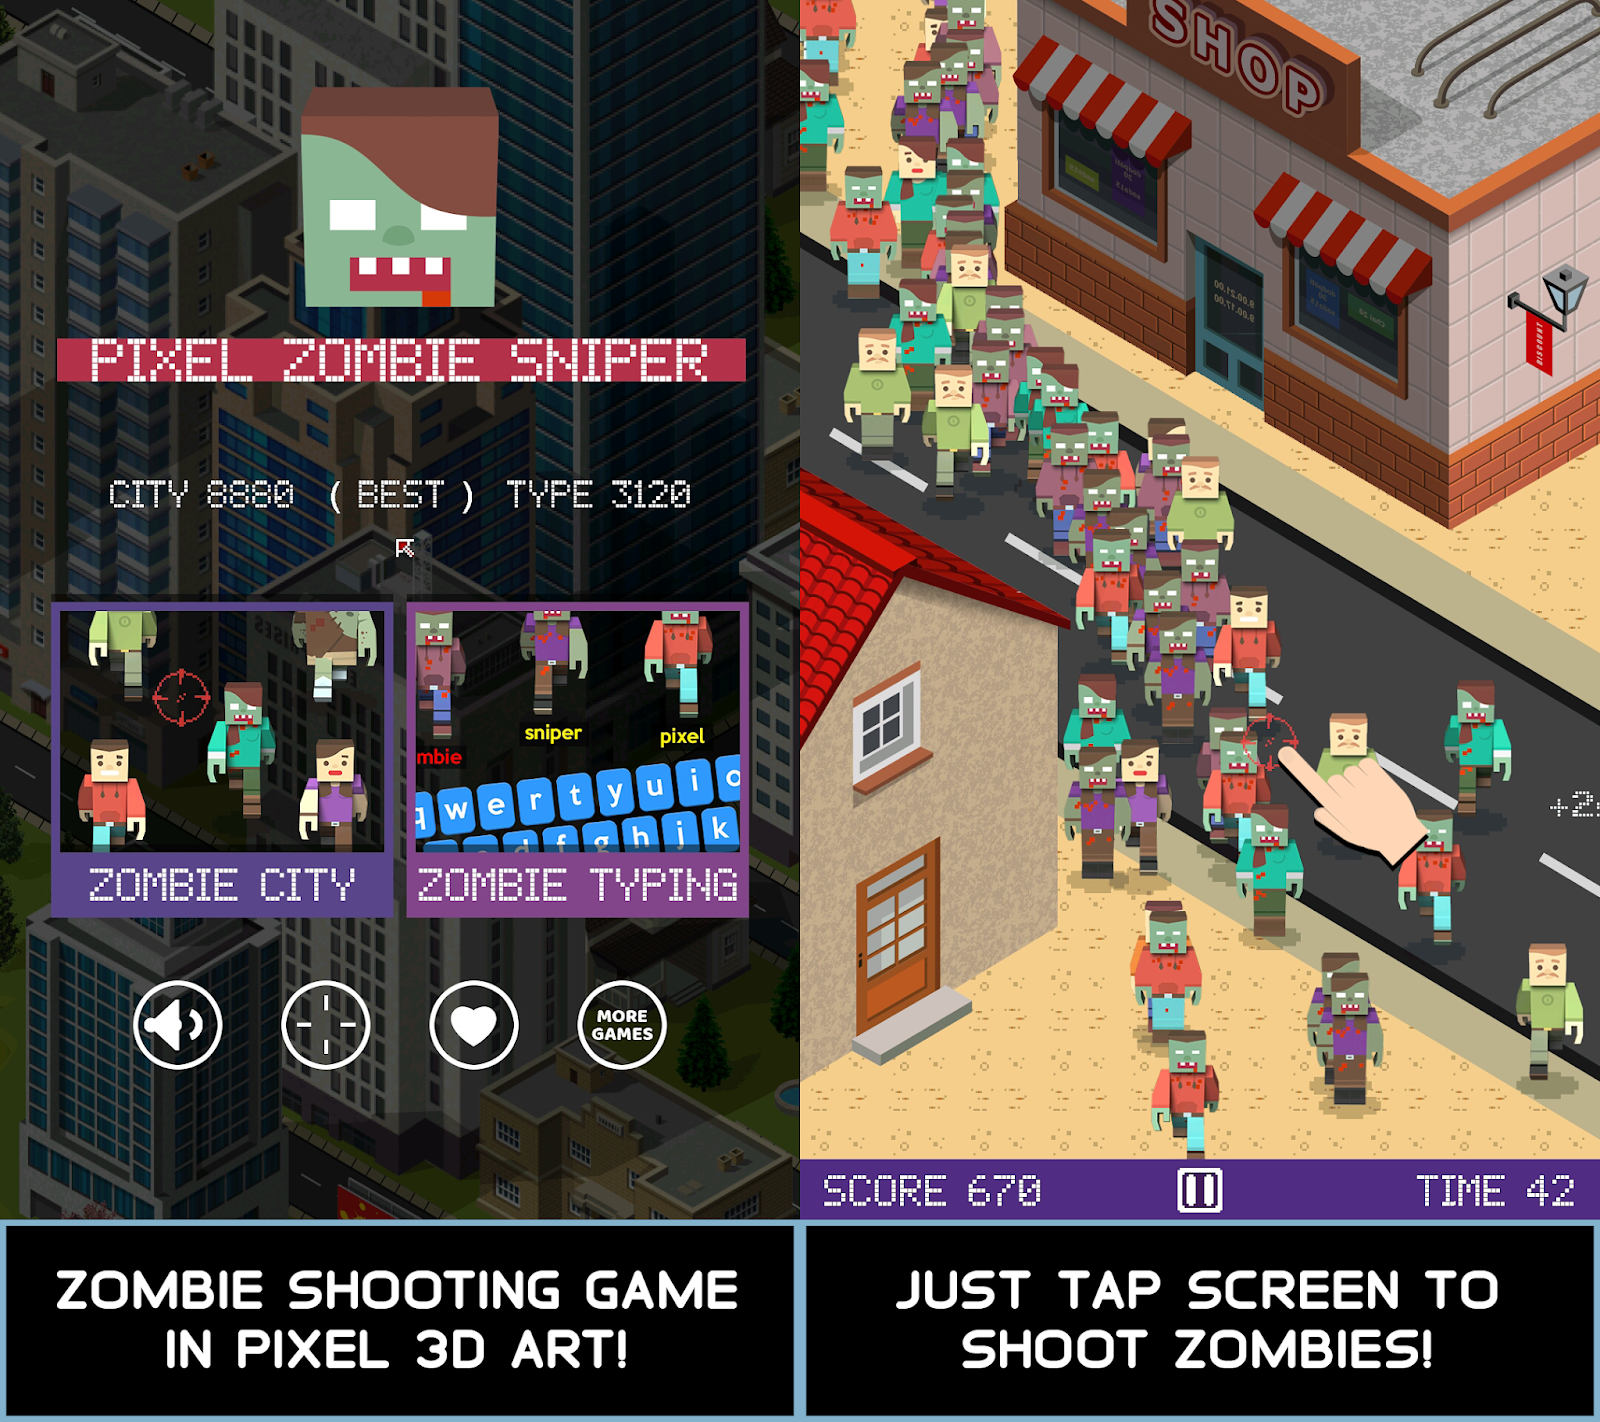 Pixel Zombie Sniper Update Features Zombie City And Zombie